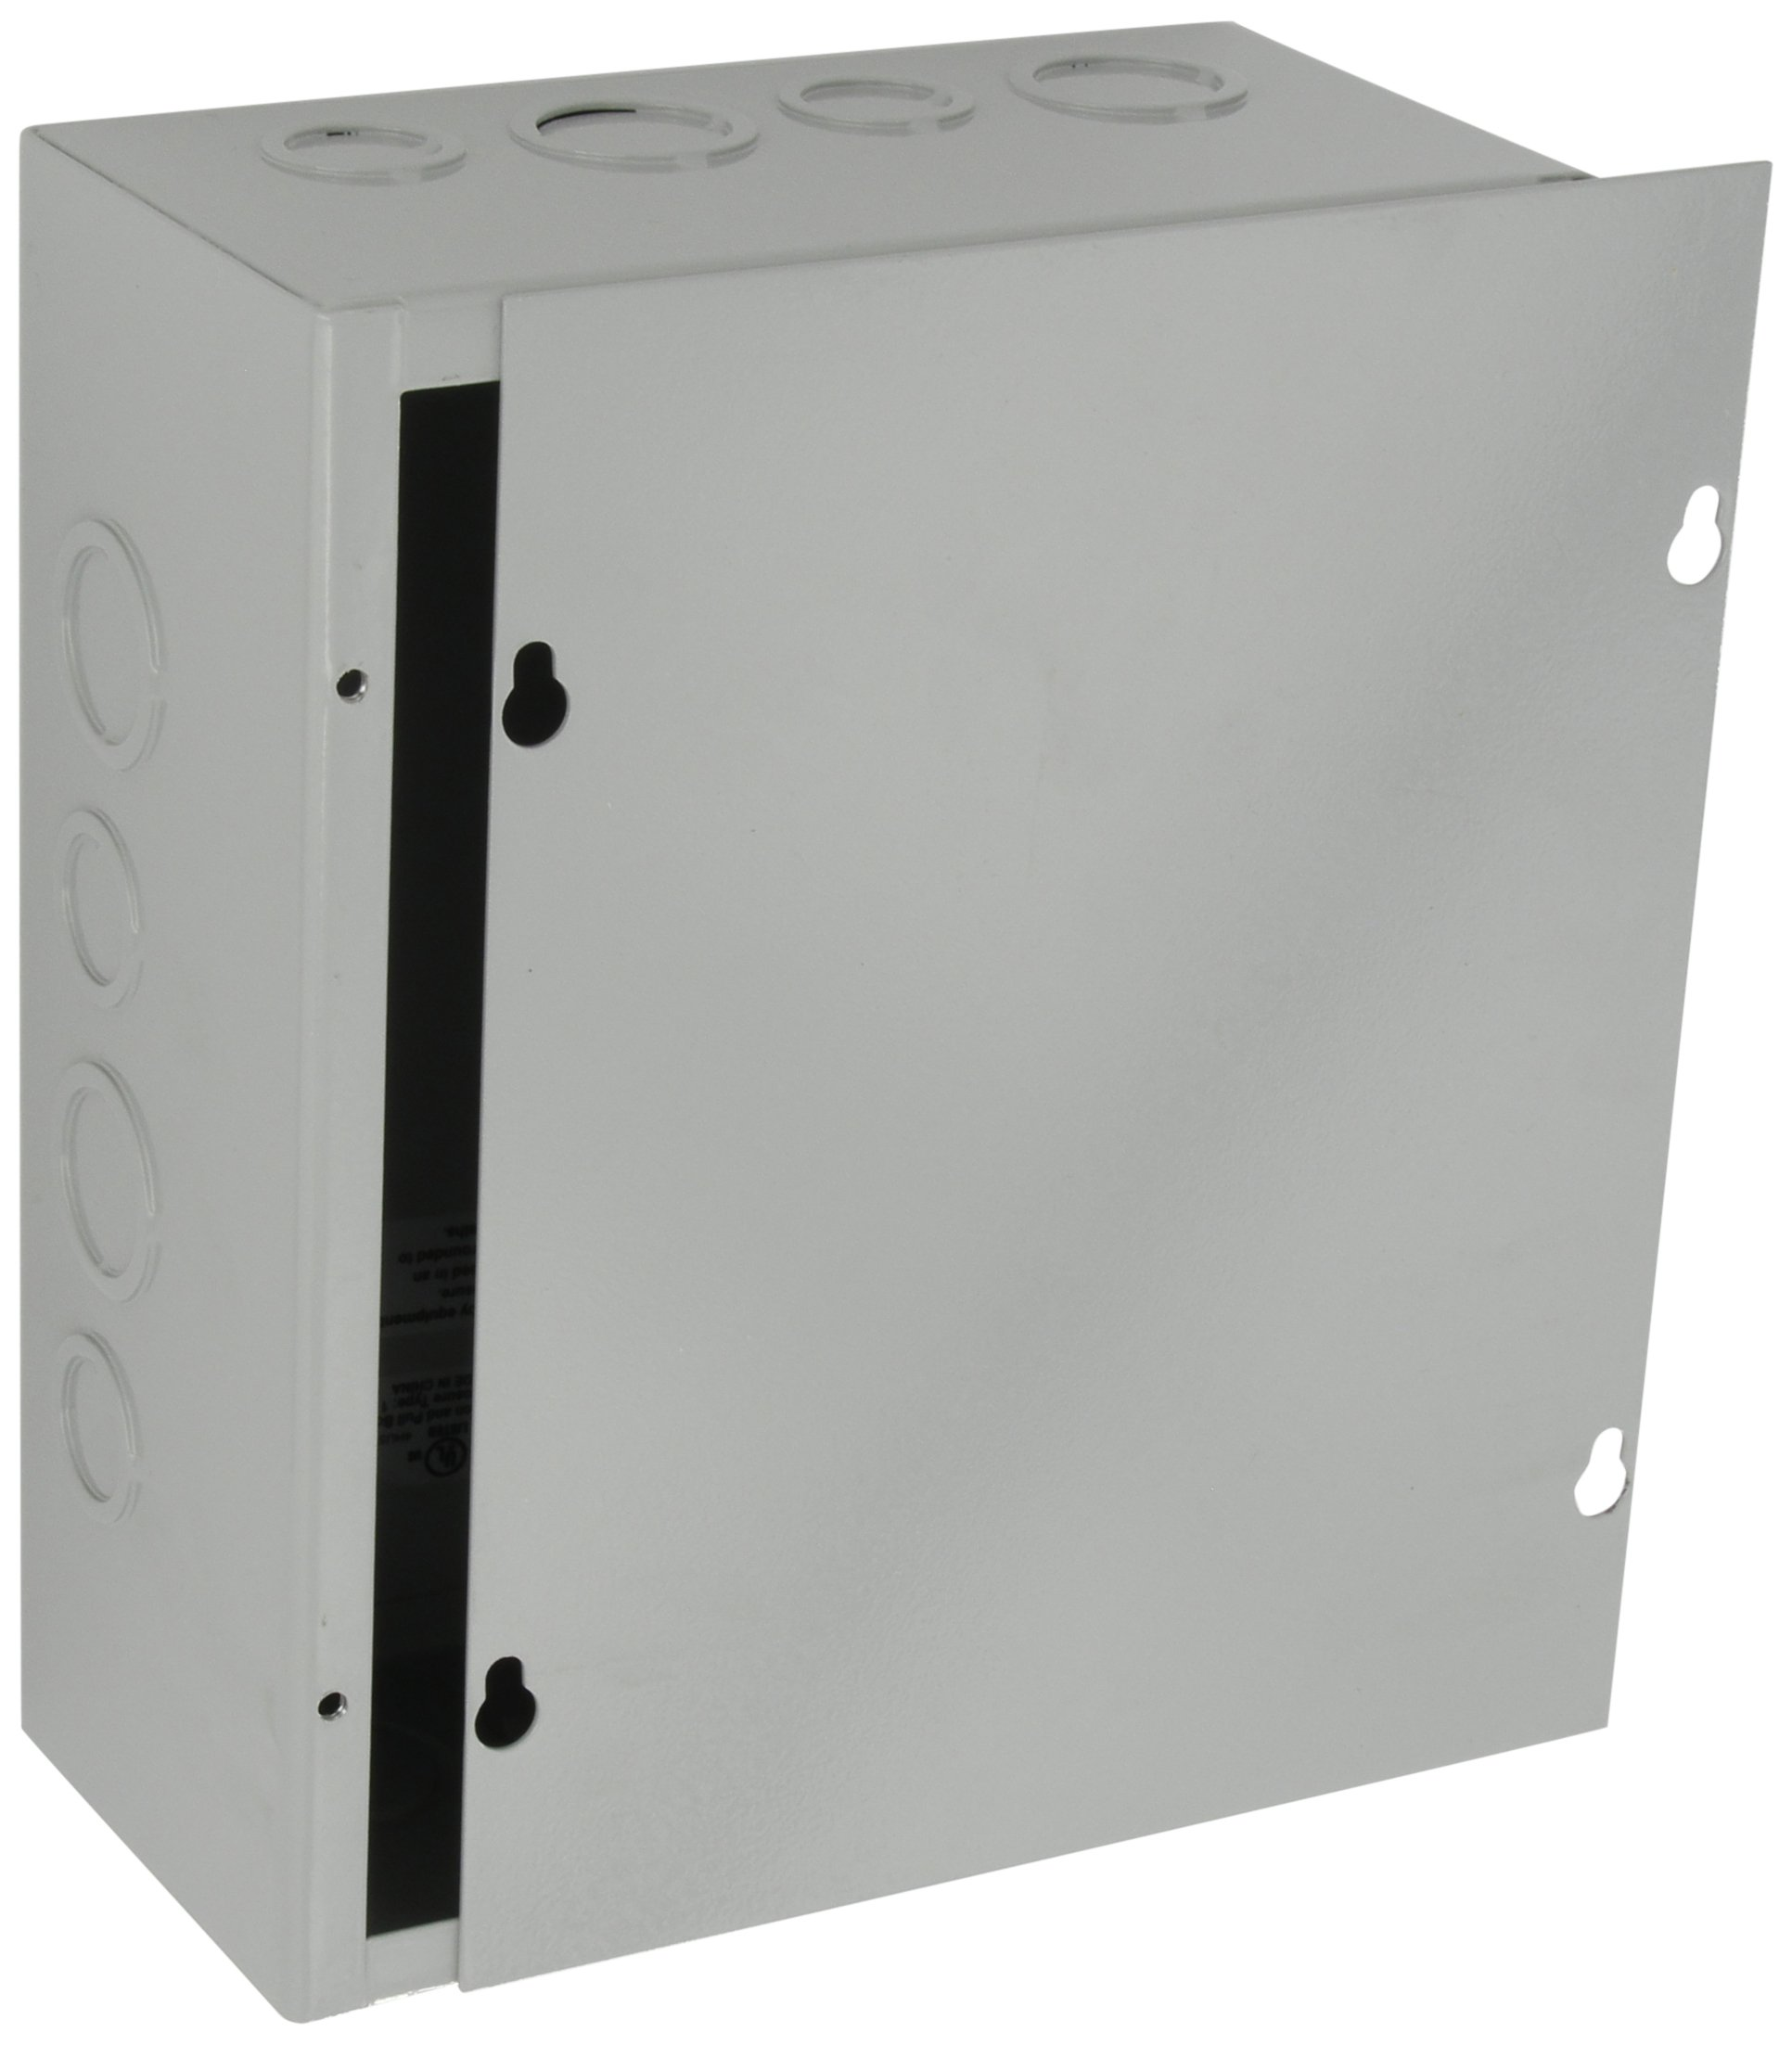 BUD Industries JB-3958-KO Steel NEMA 1 Sheet Metal Junction Box with Knockout and Lift-off Screw Cover, 8'' Width x 10'' Height x 4'' Depth, Gray Finish